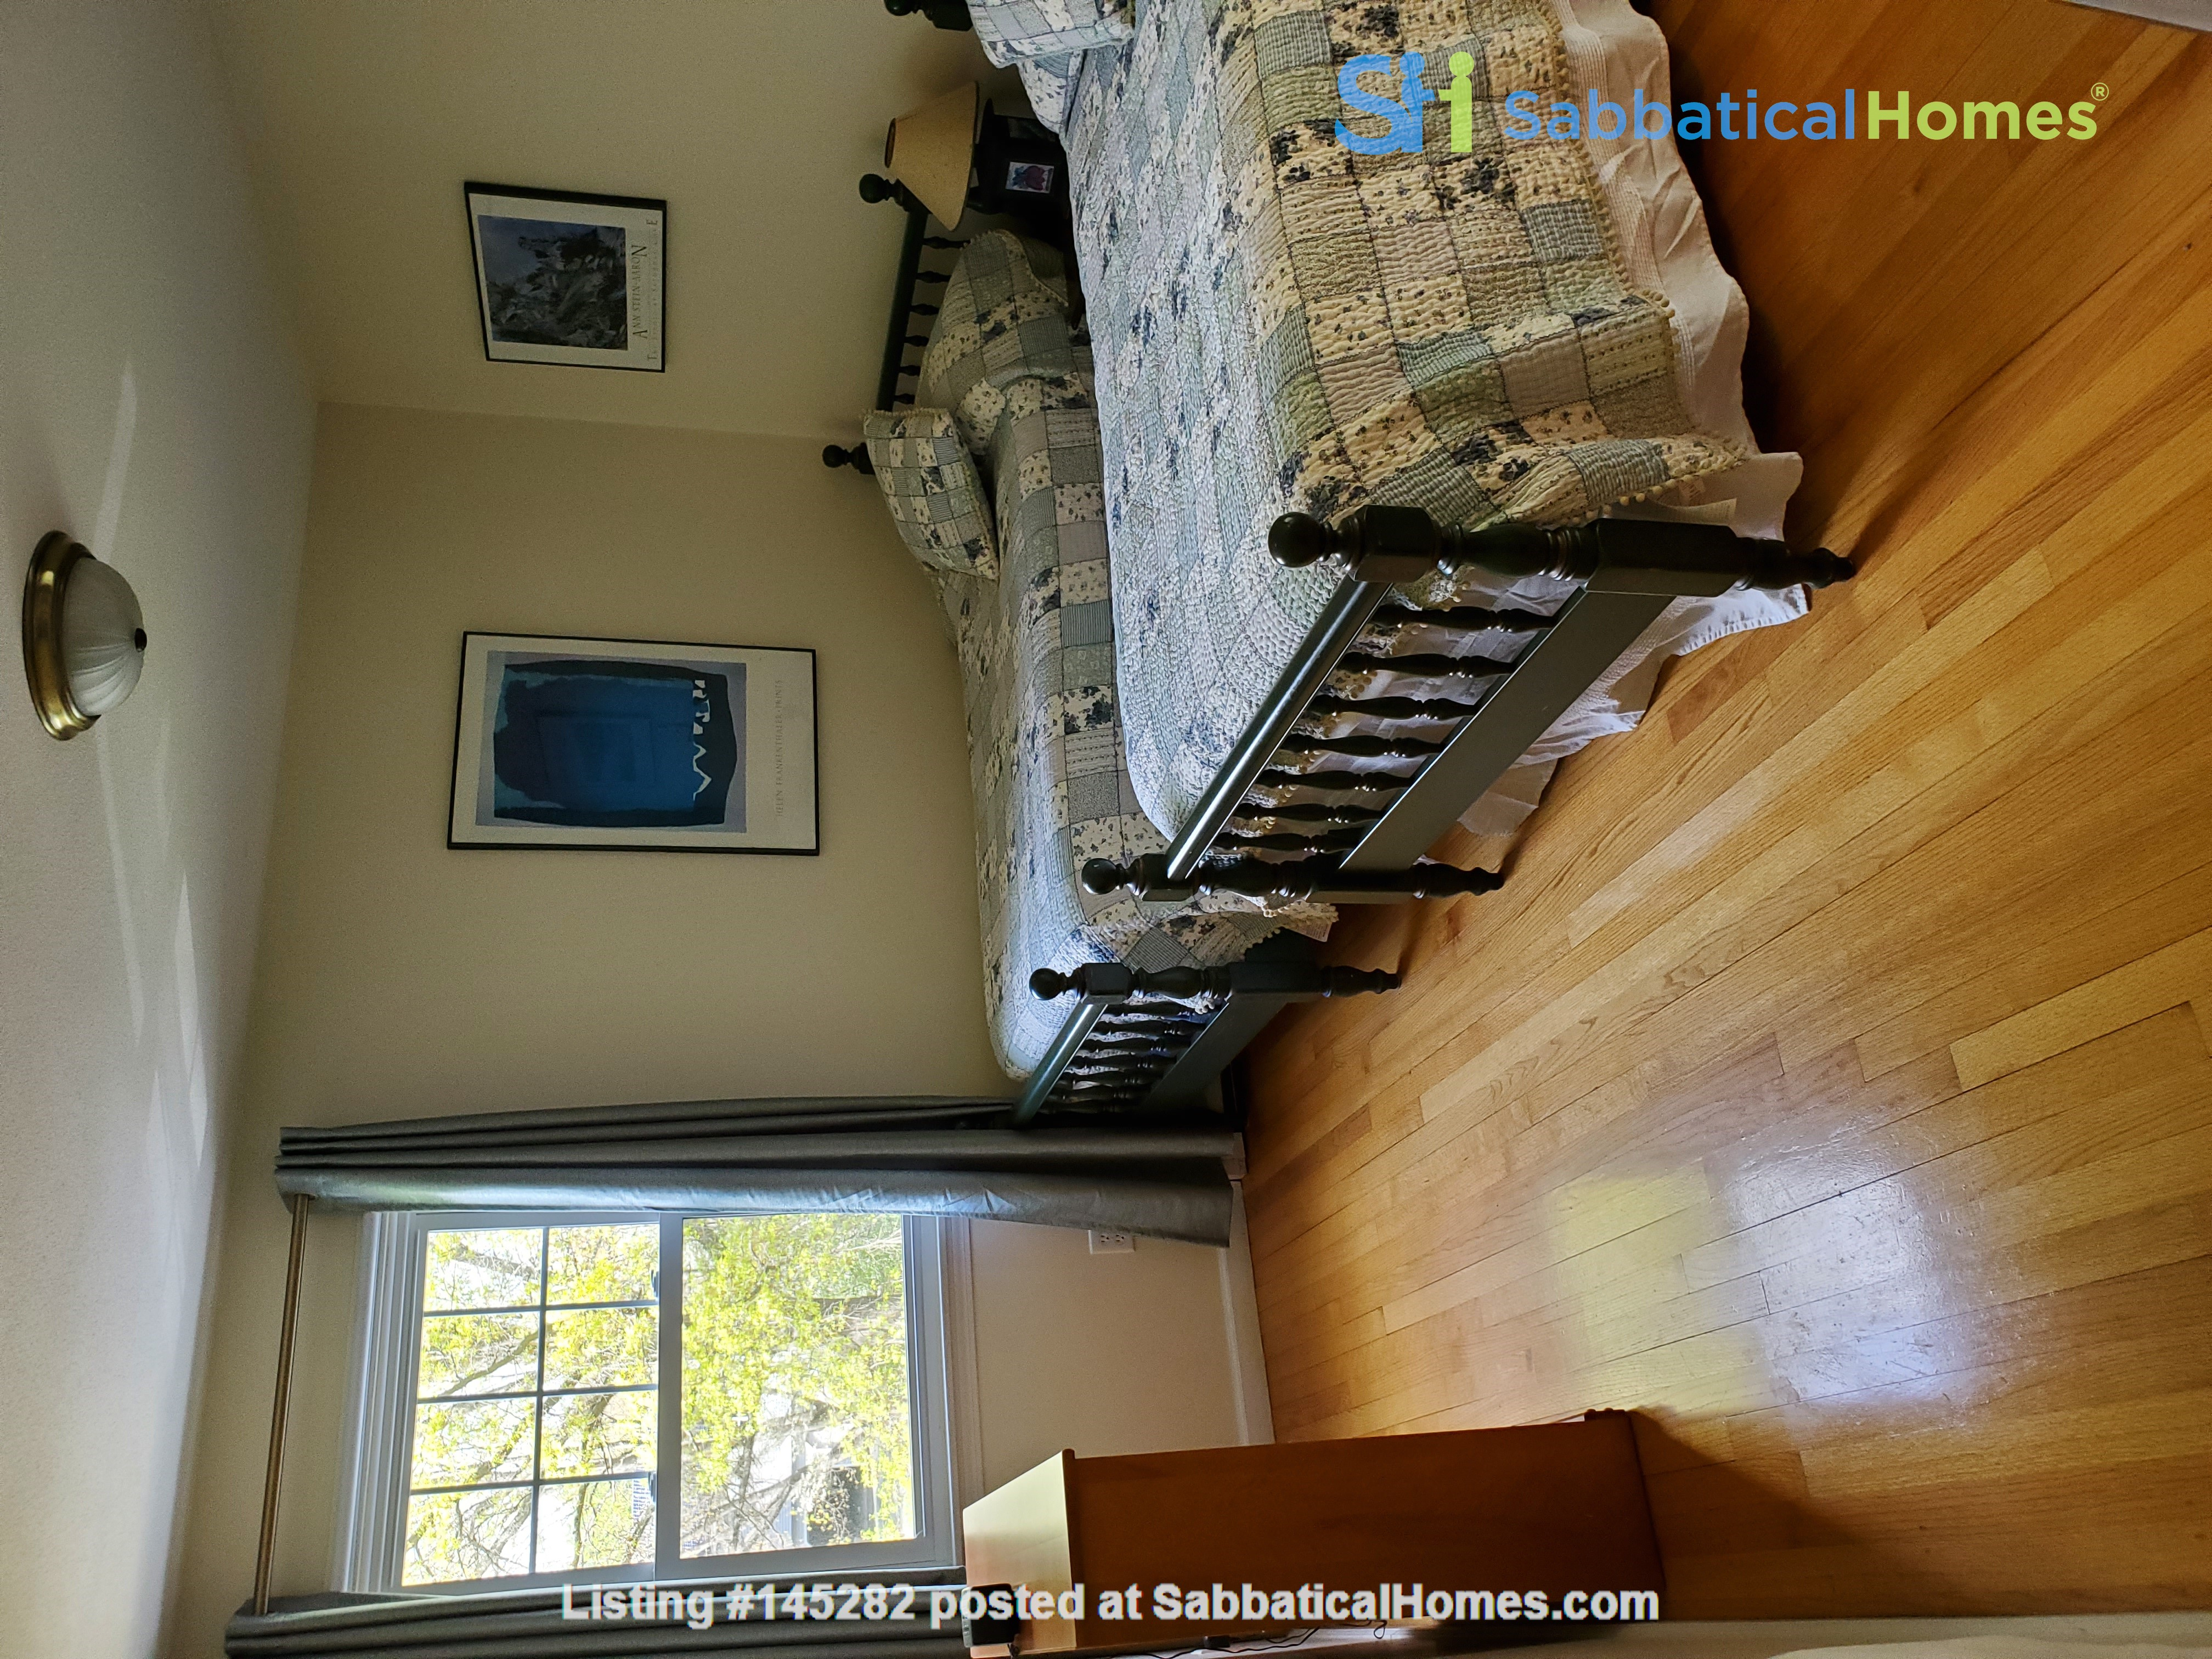 Spacious, Peaceful Getaway in Beautiful Amherst, MA, 4 BR 3.5 ba Home Rental in Amherst, Massachusetts, United States 2